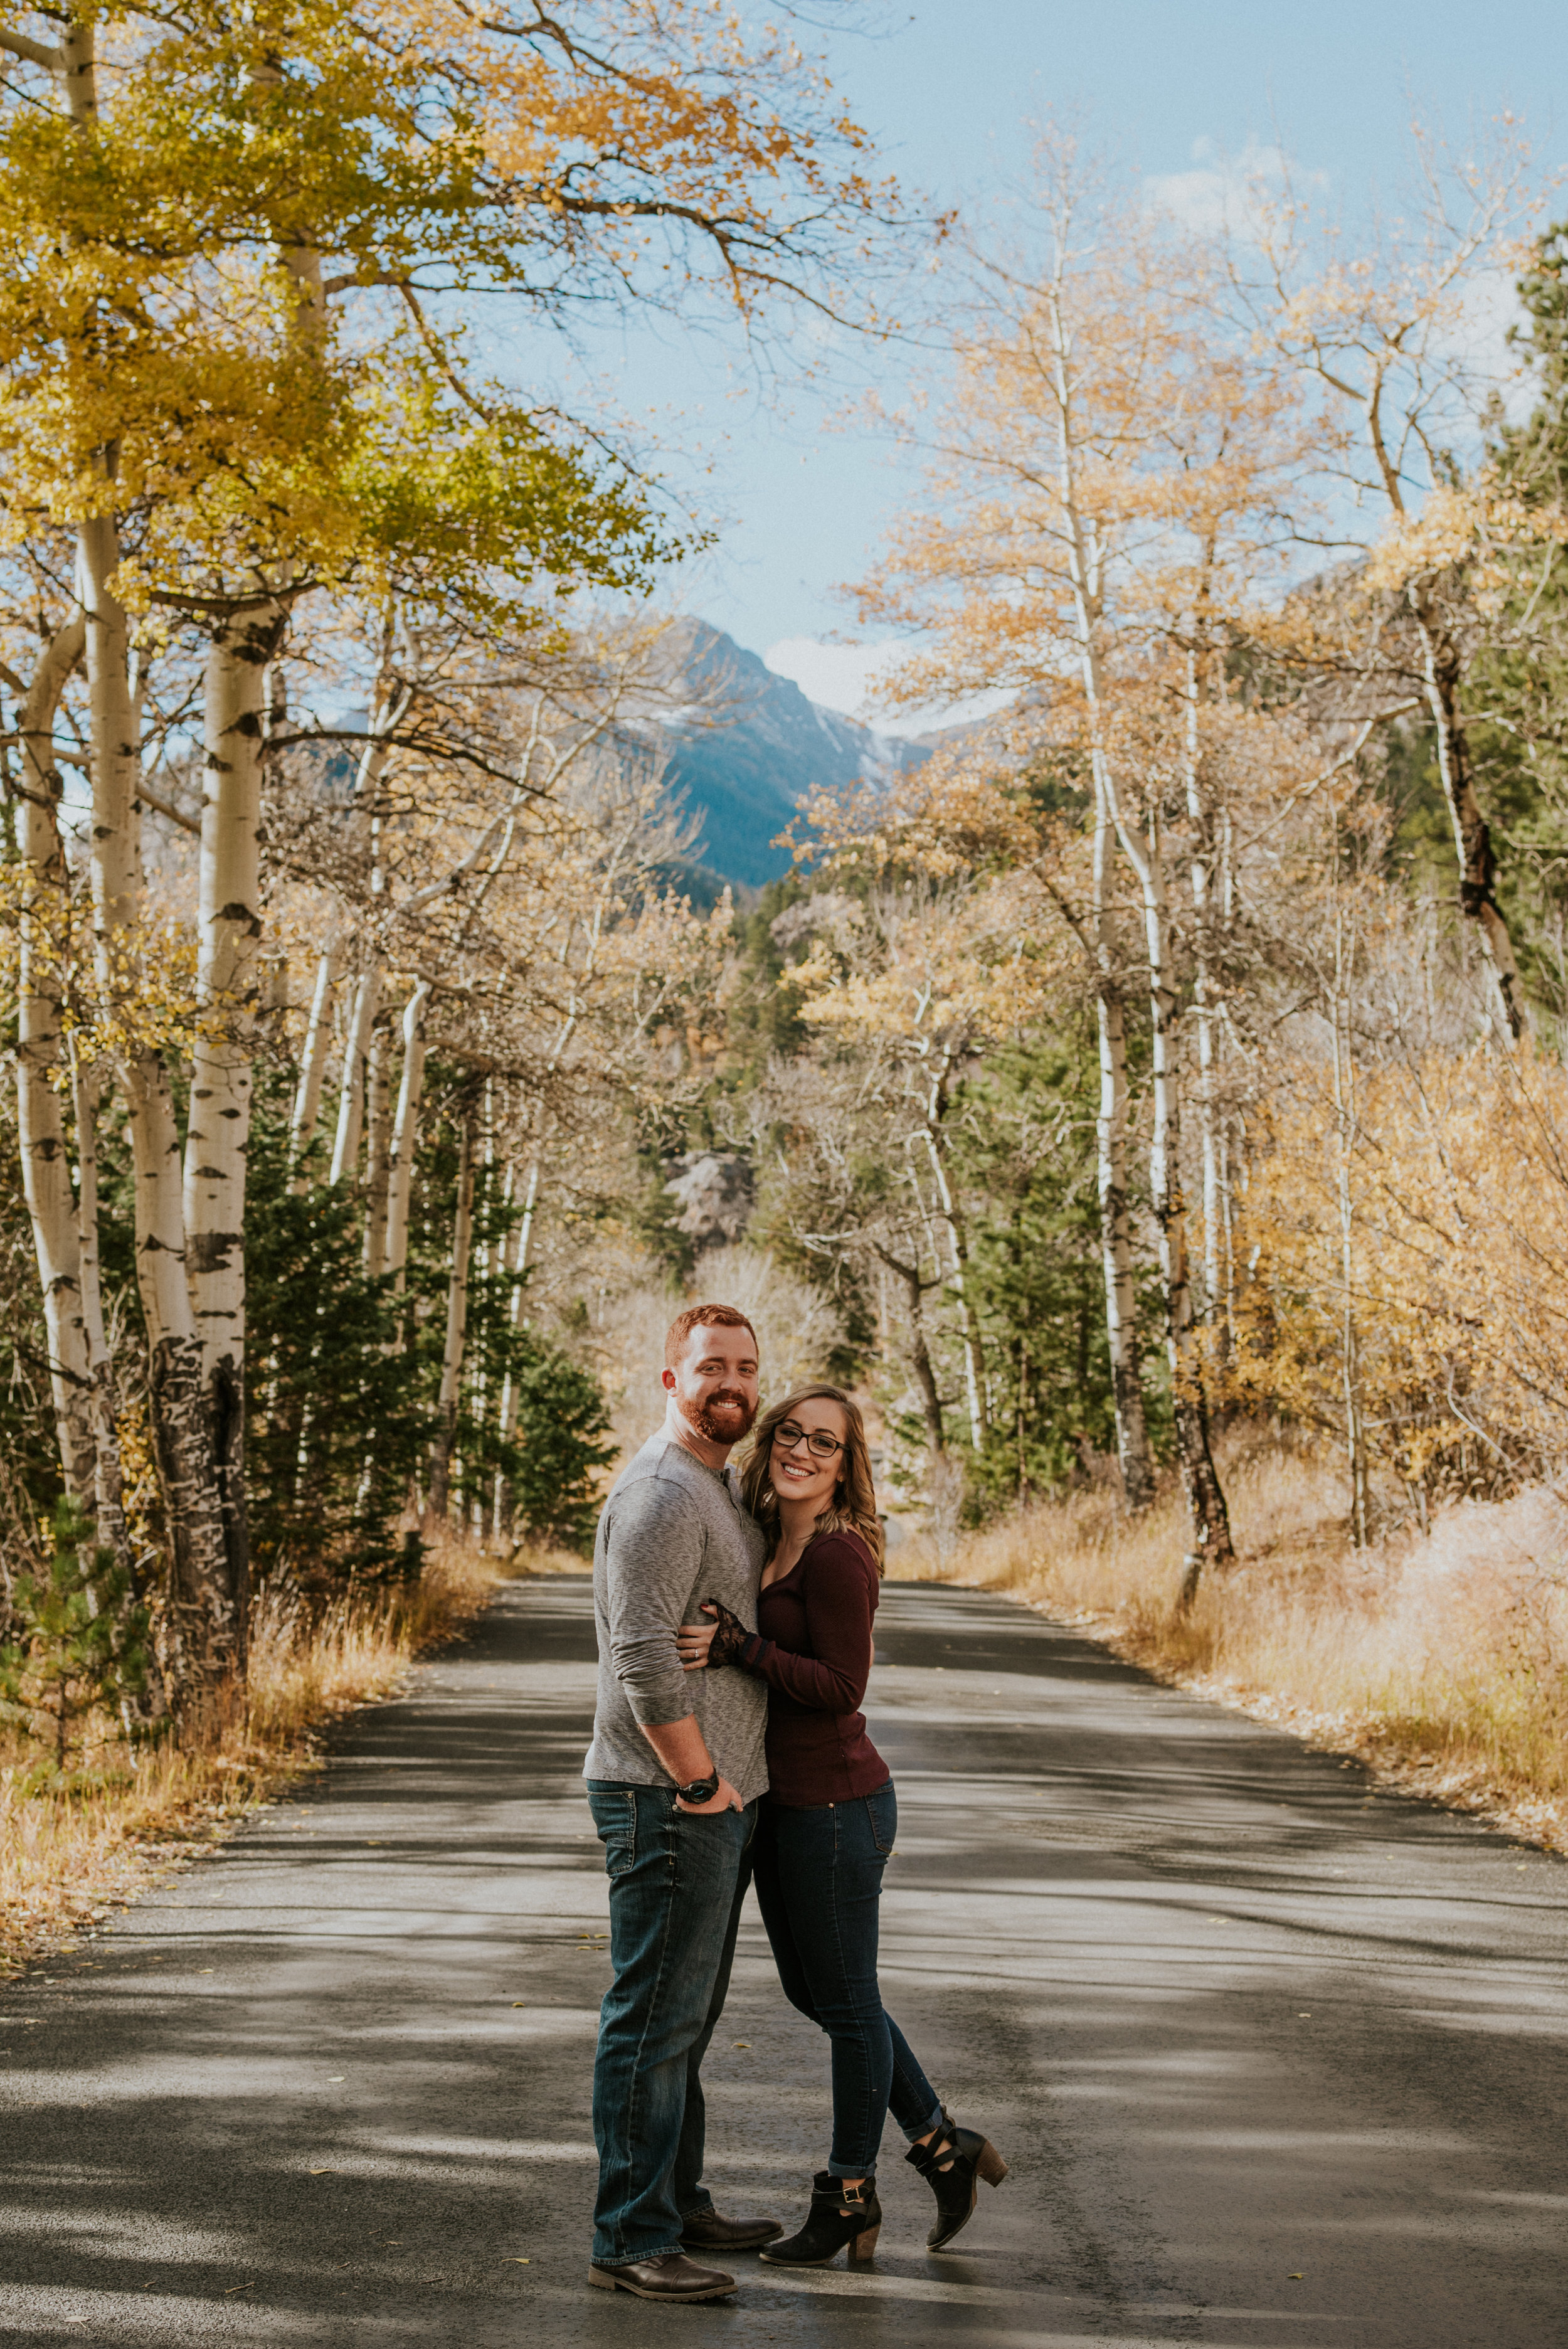 Romantic Windy Rocky Mountain National Park Engagement Photographer-9 (2).jpg